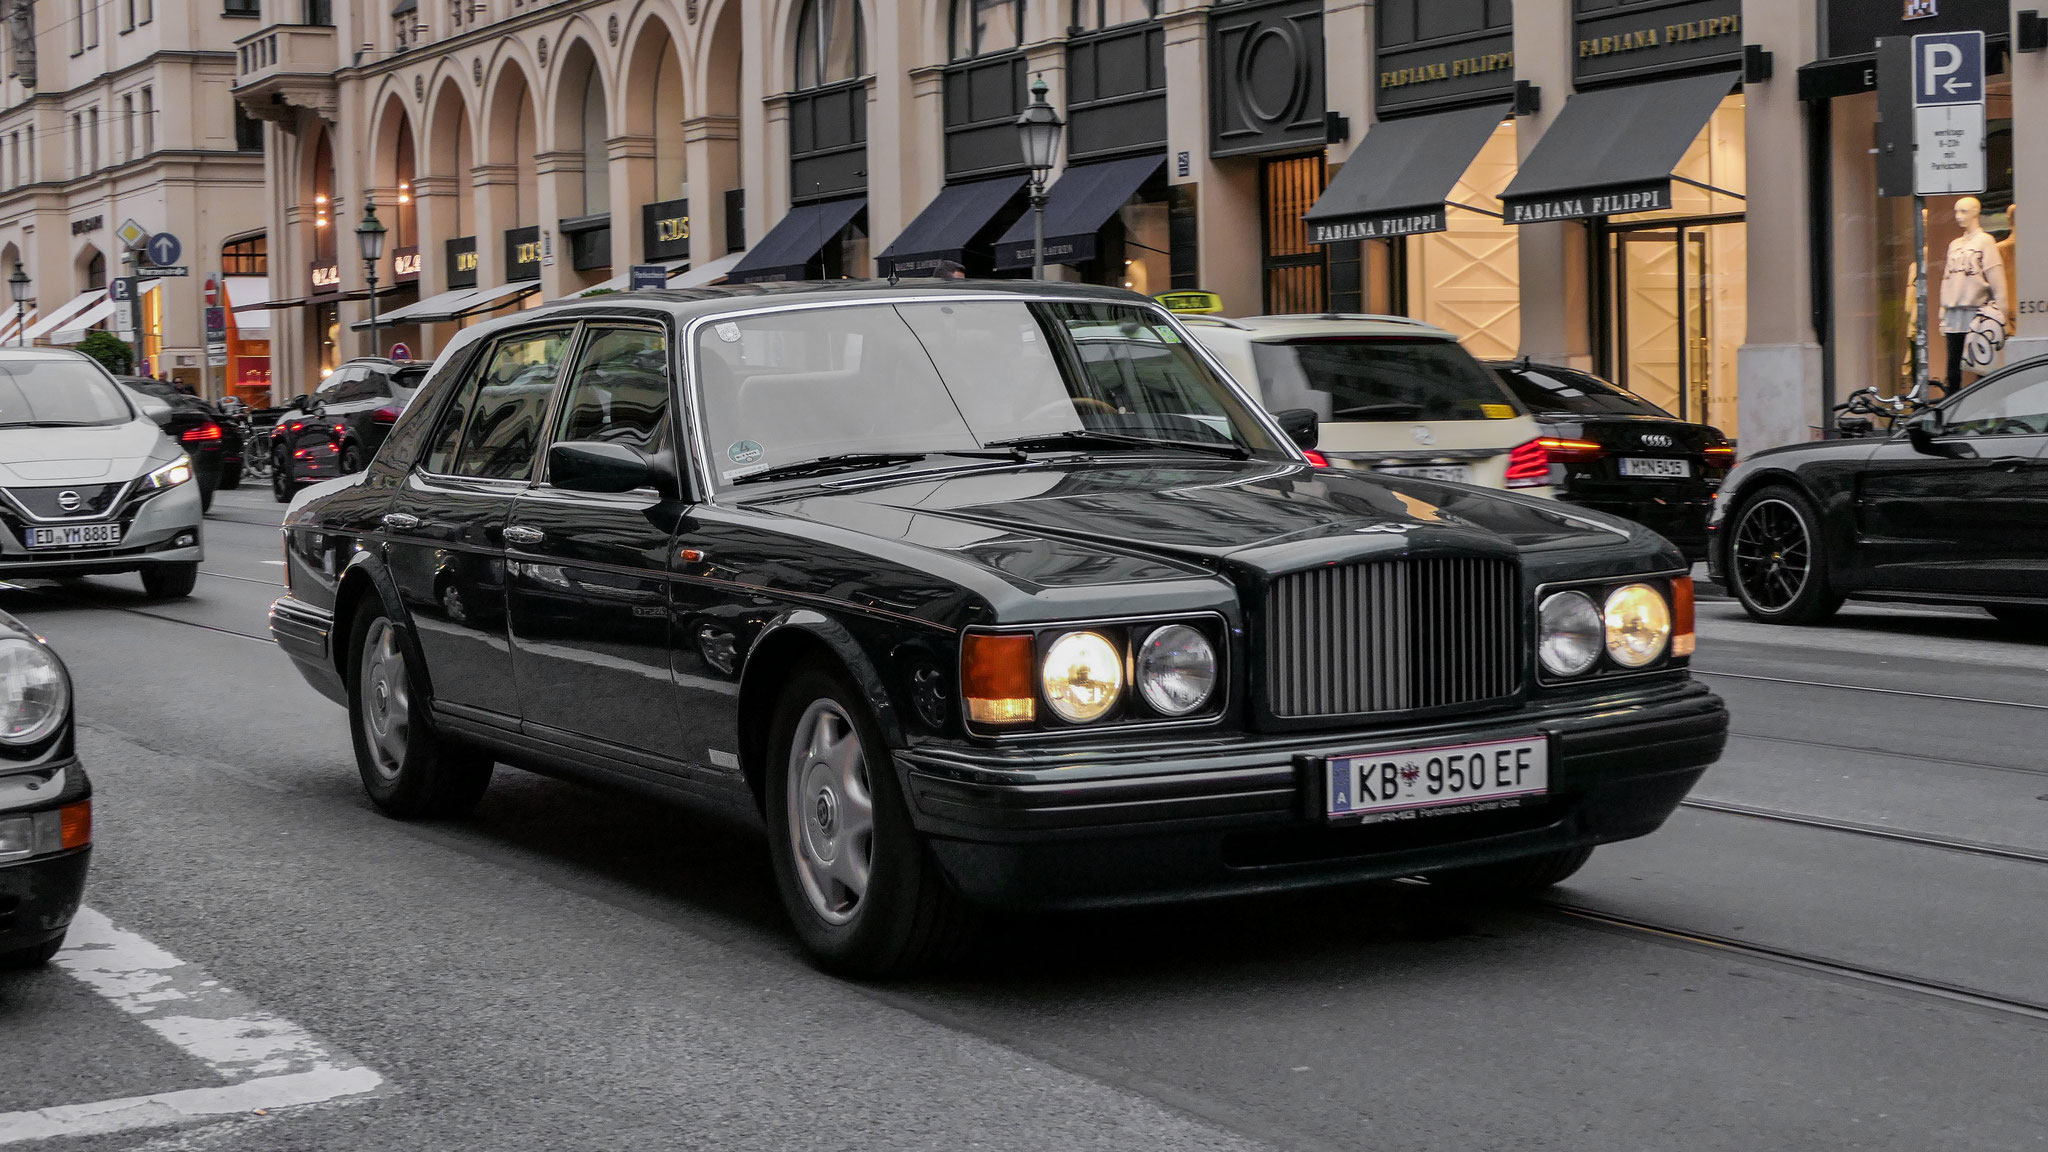 Bentley Brooklands - KB-950-EF (AUT)